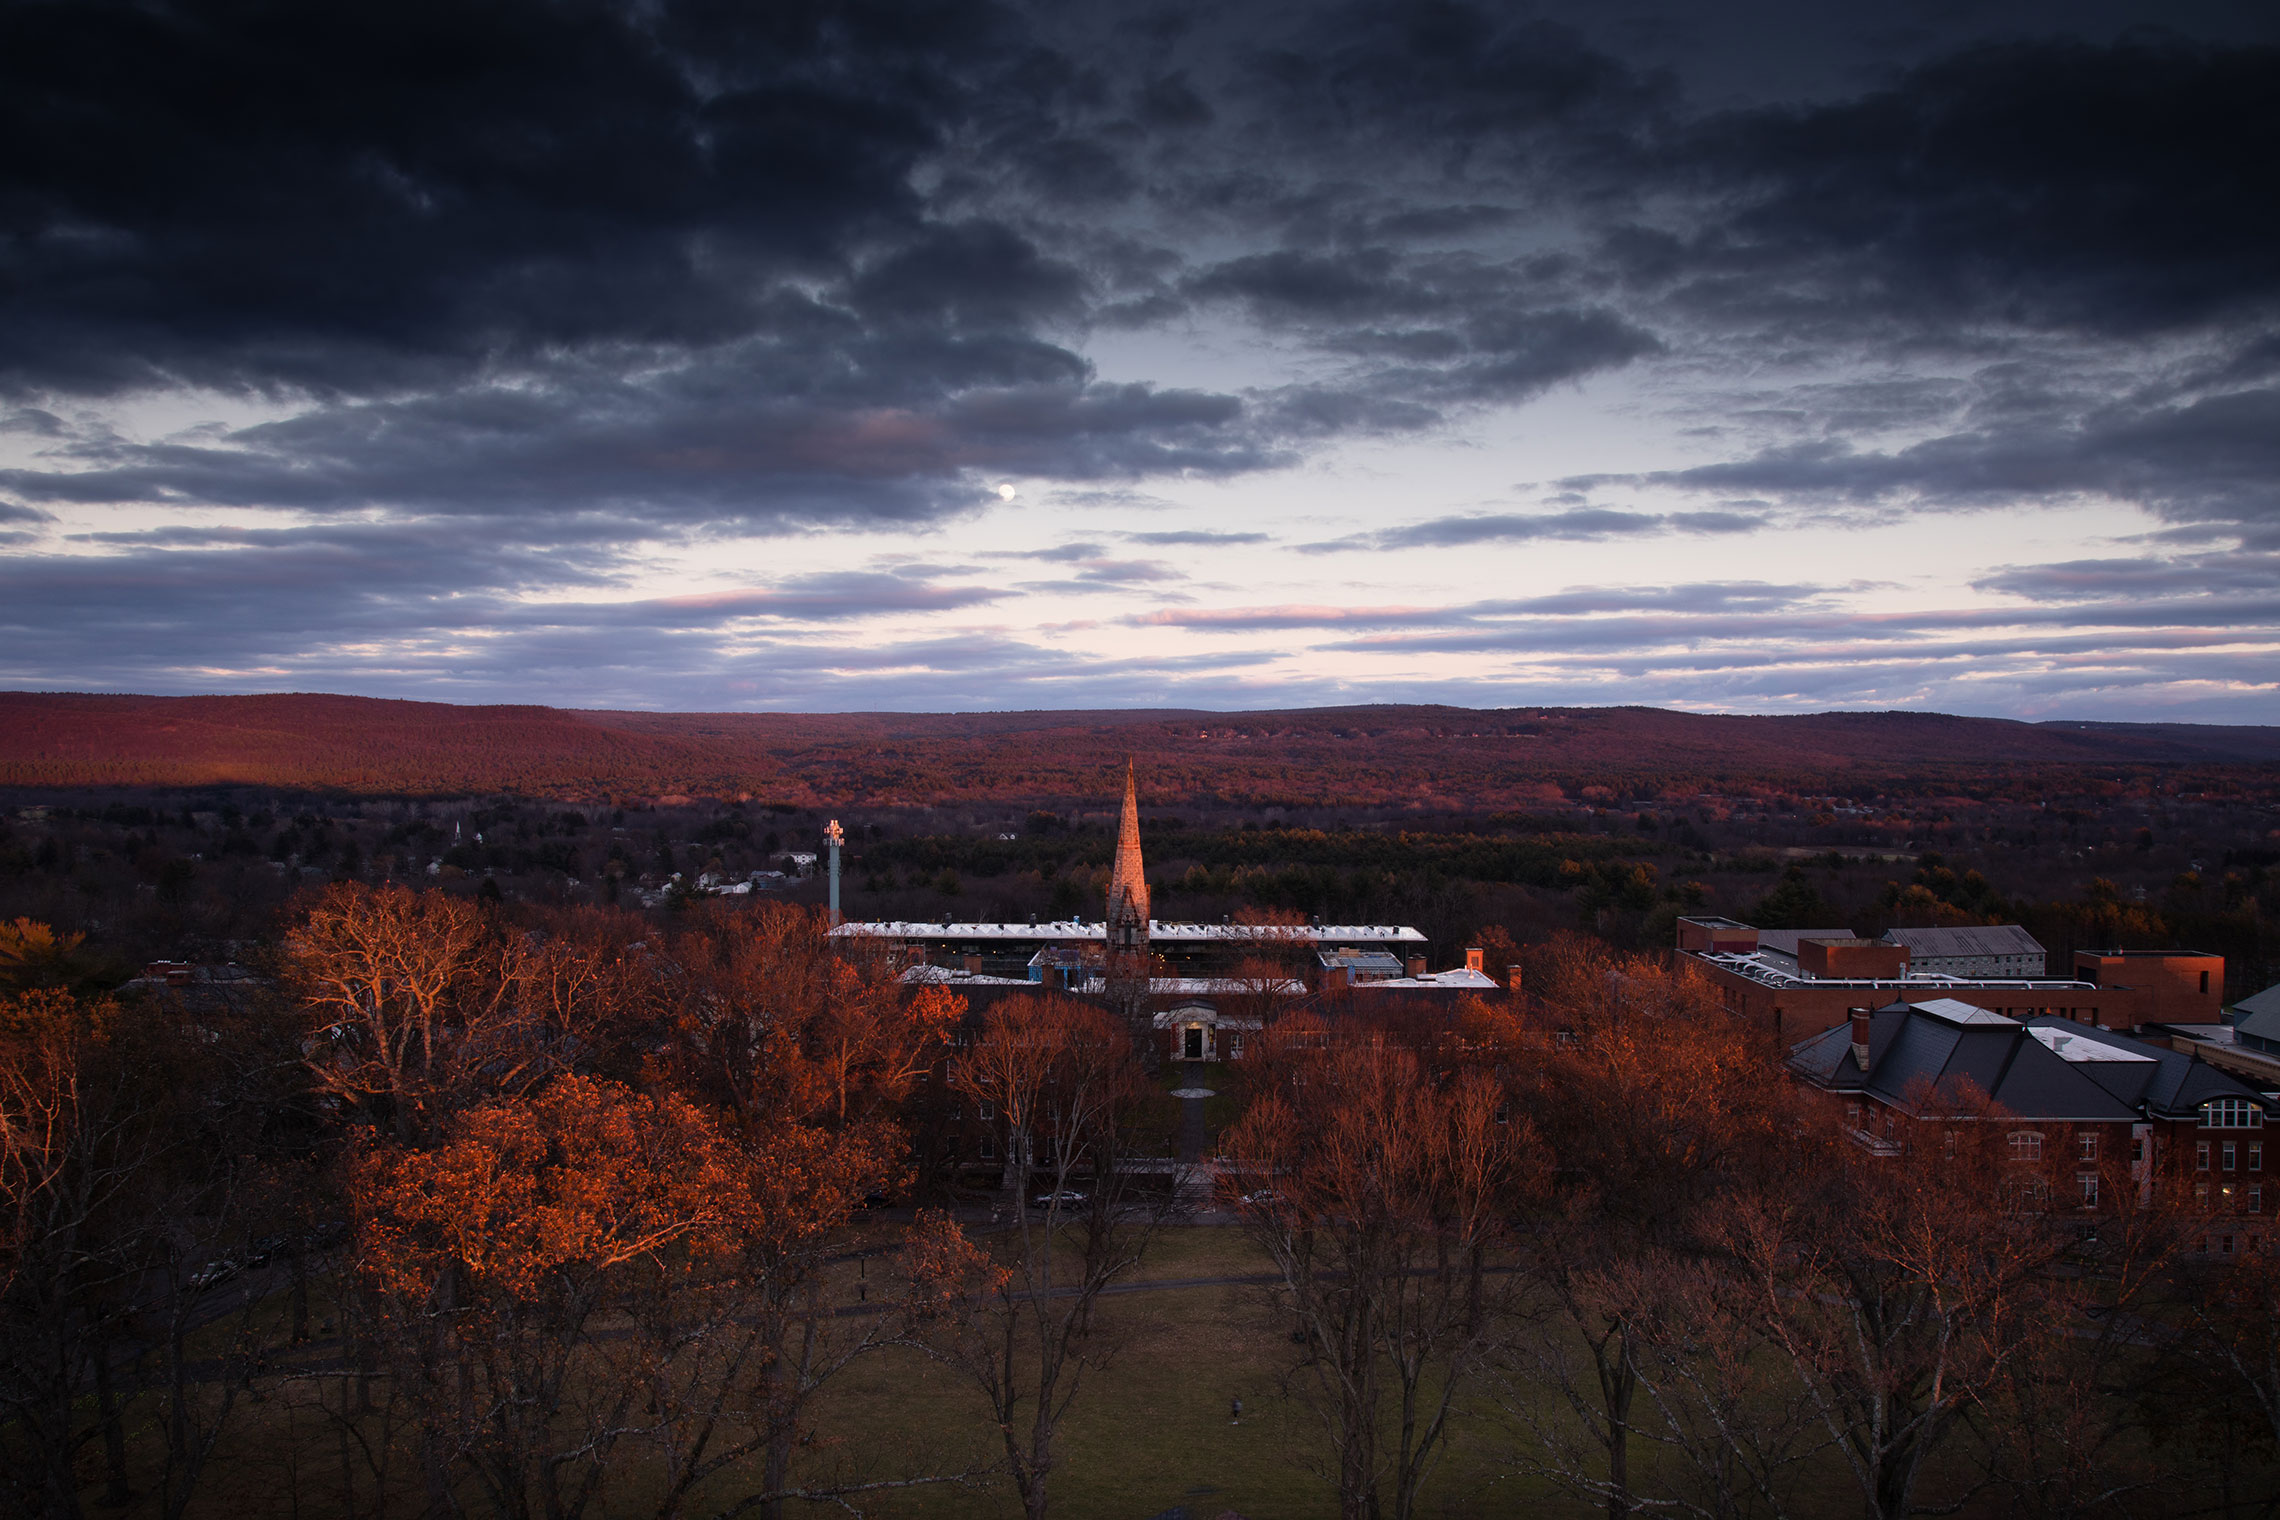 Moonrise creating beautiful lighting over the campus of Amherst College.